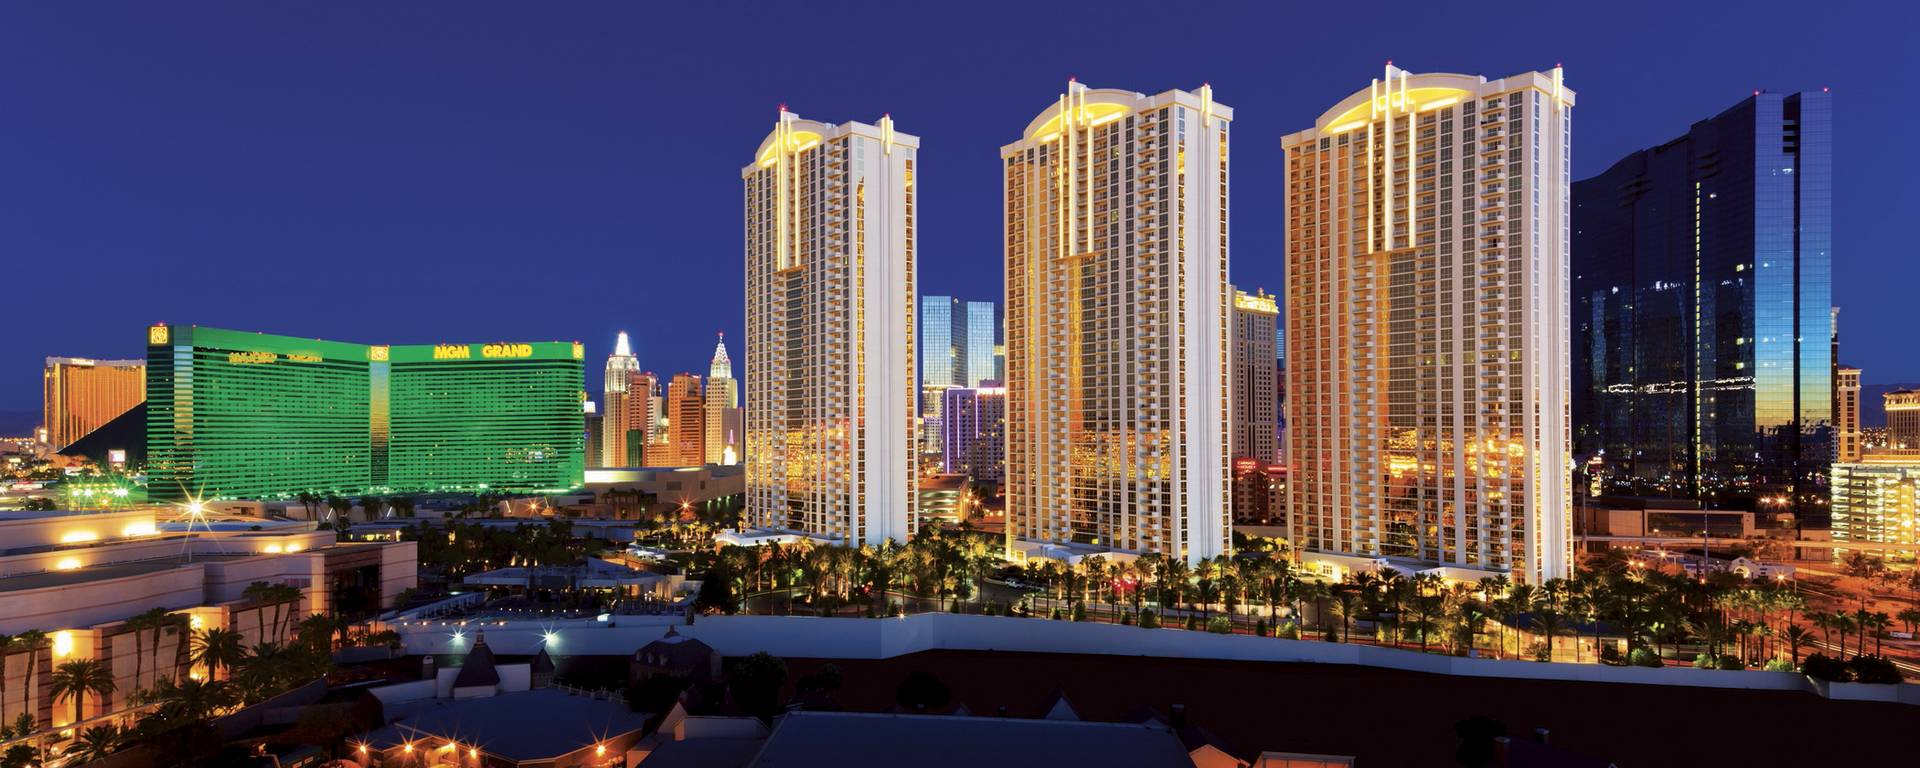 The Signature Hotel Las Vegas Deals & Promo Codes